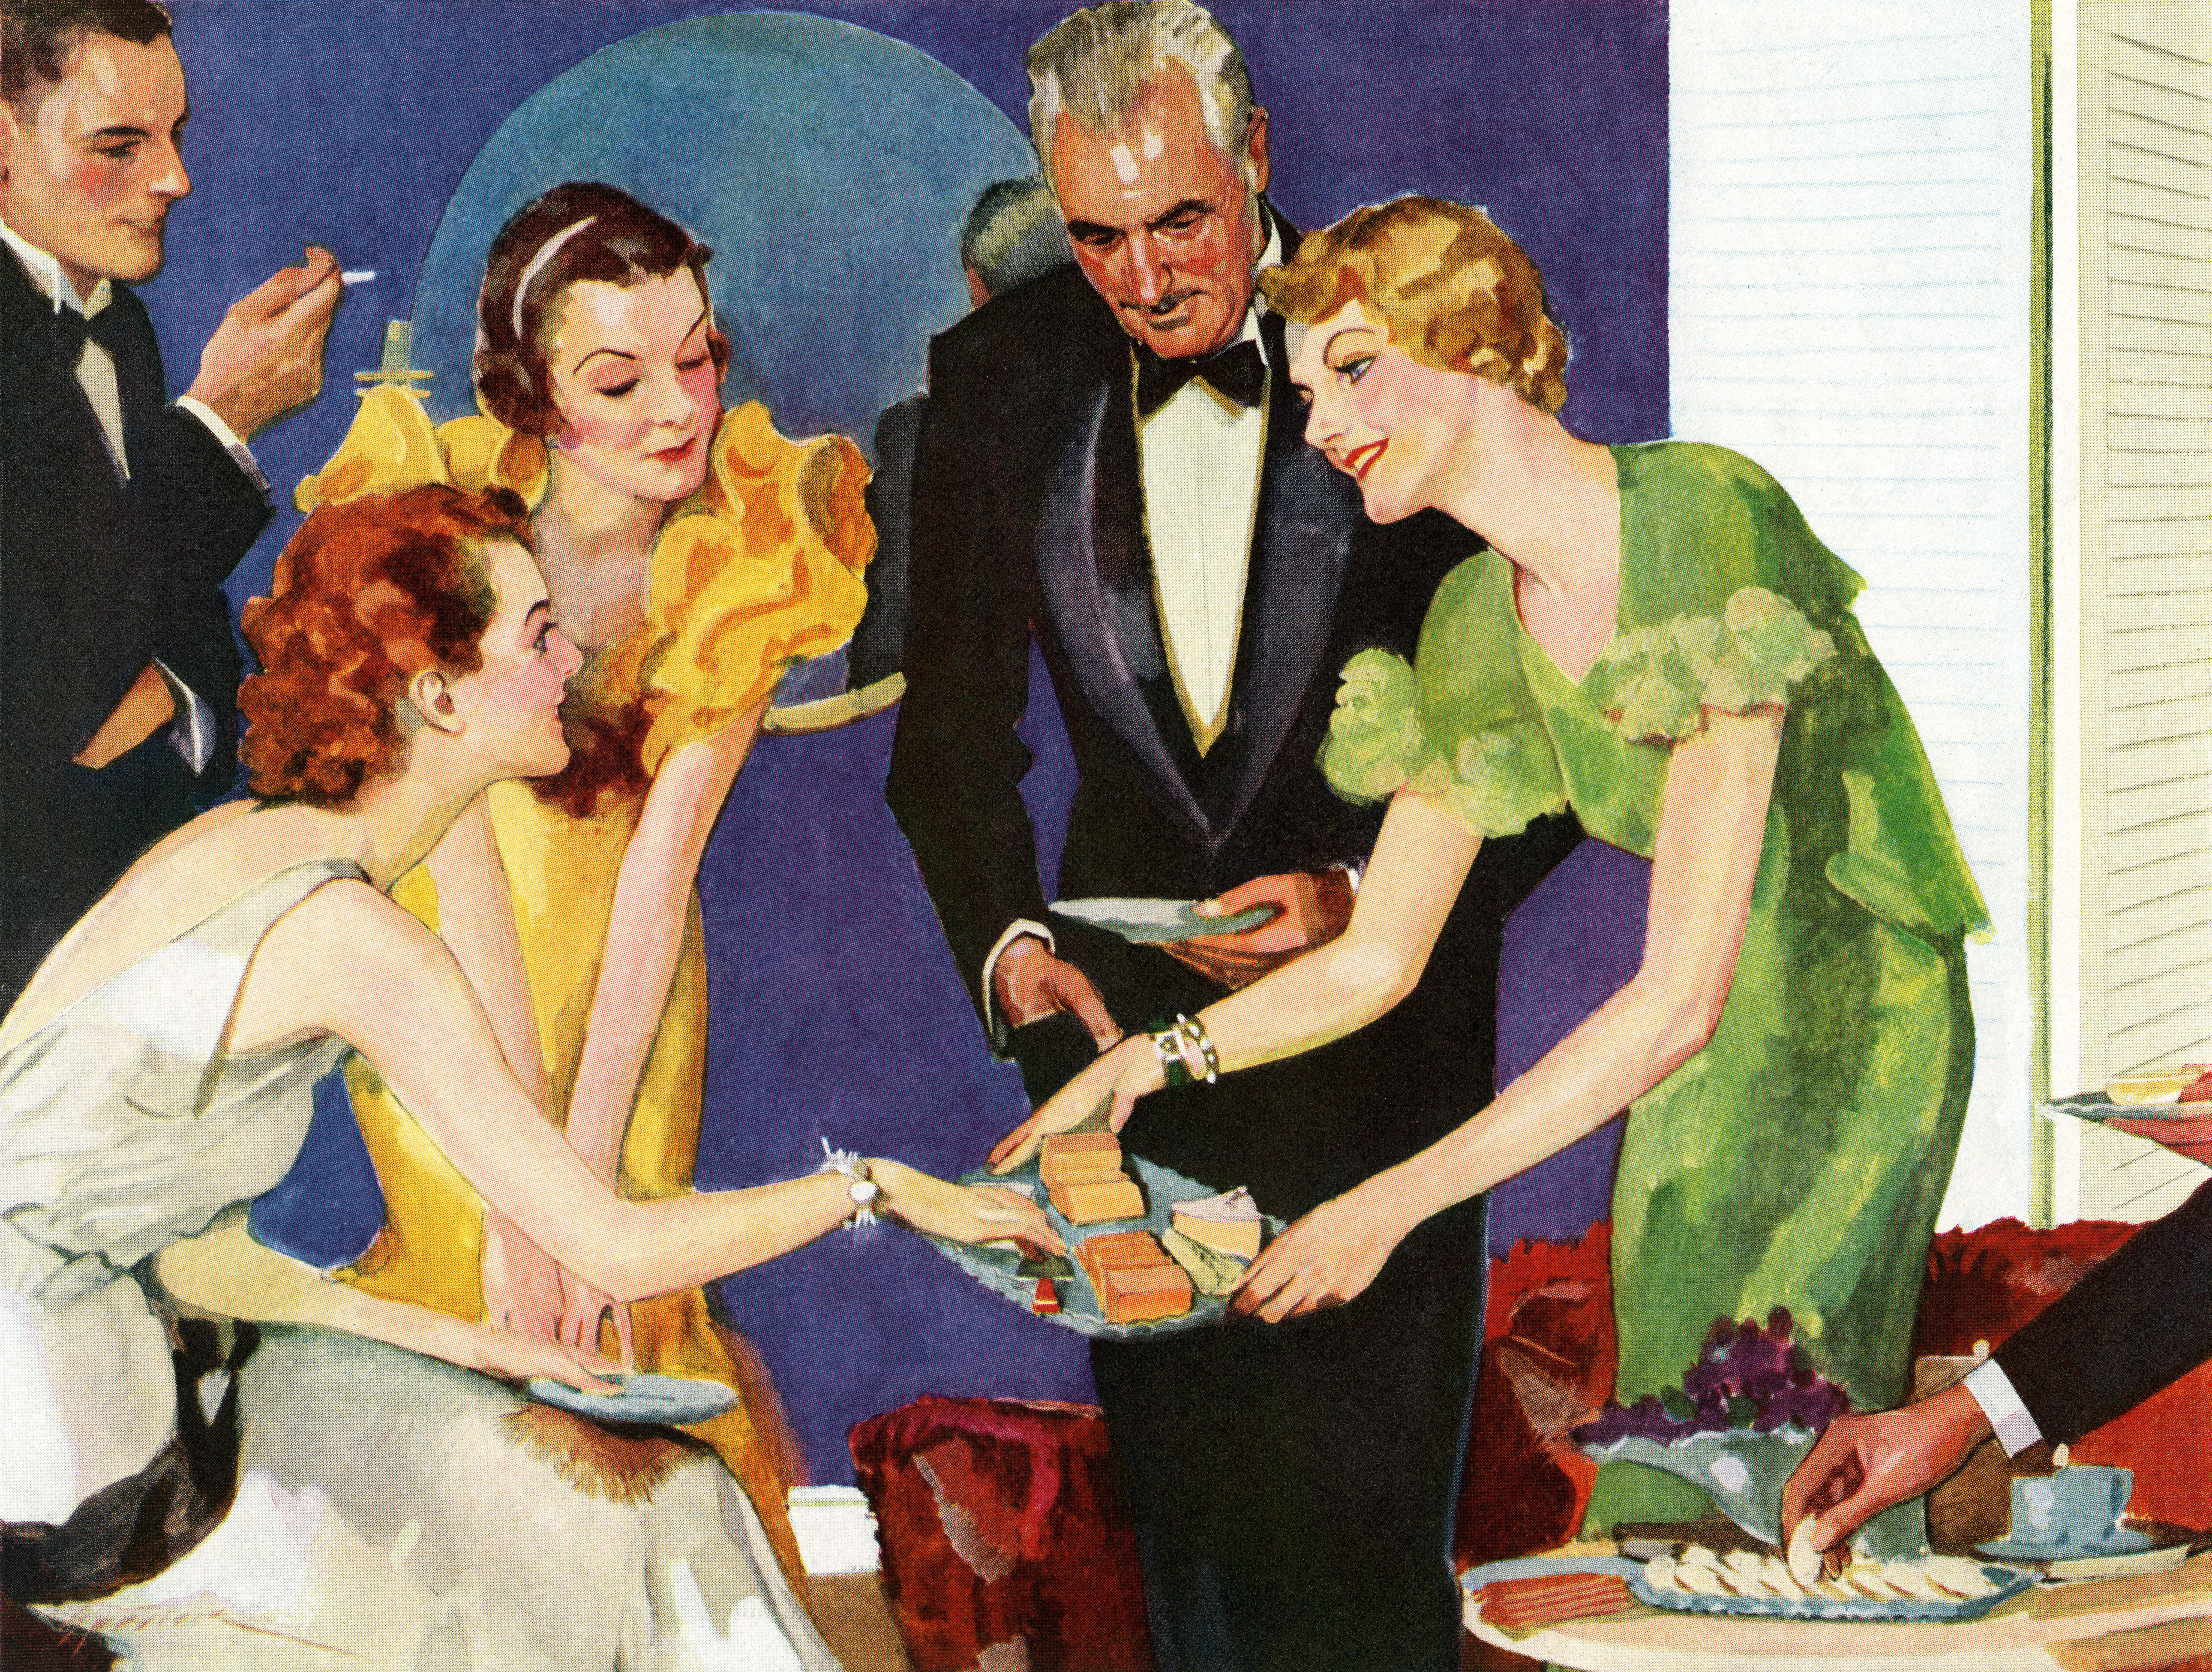 Vintage Cocktail Party